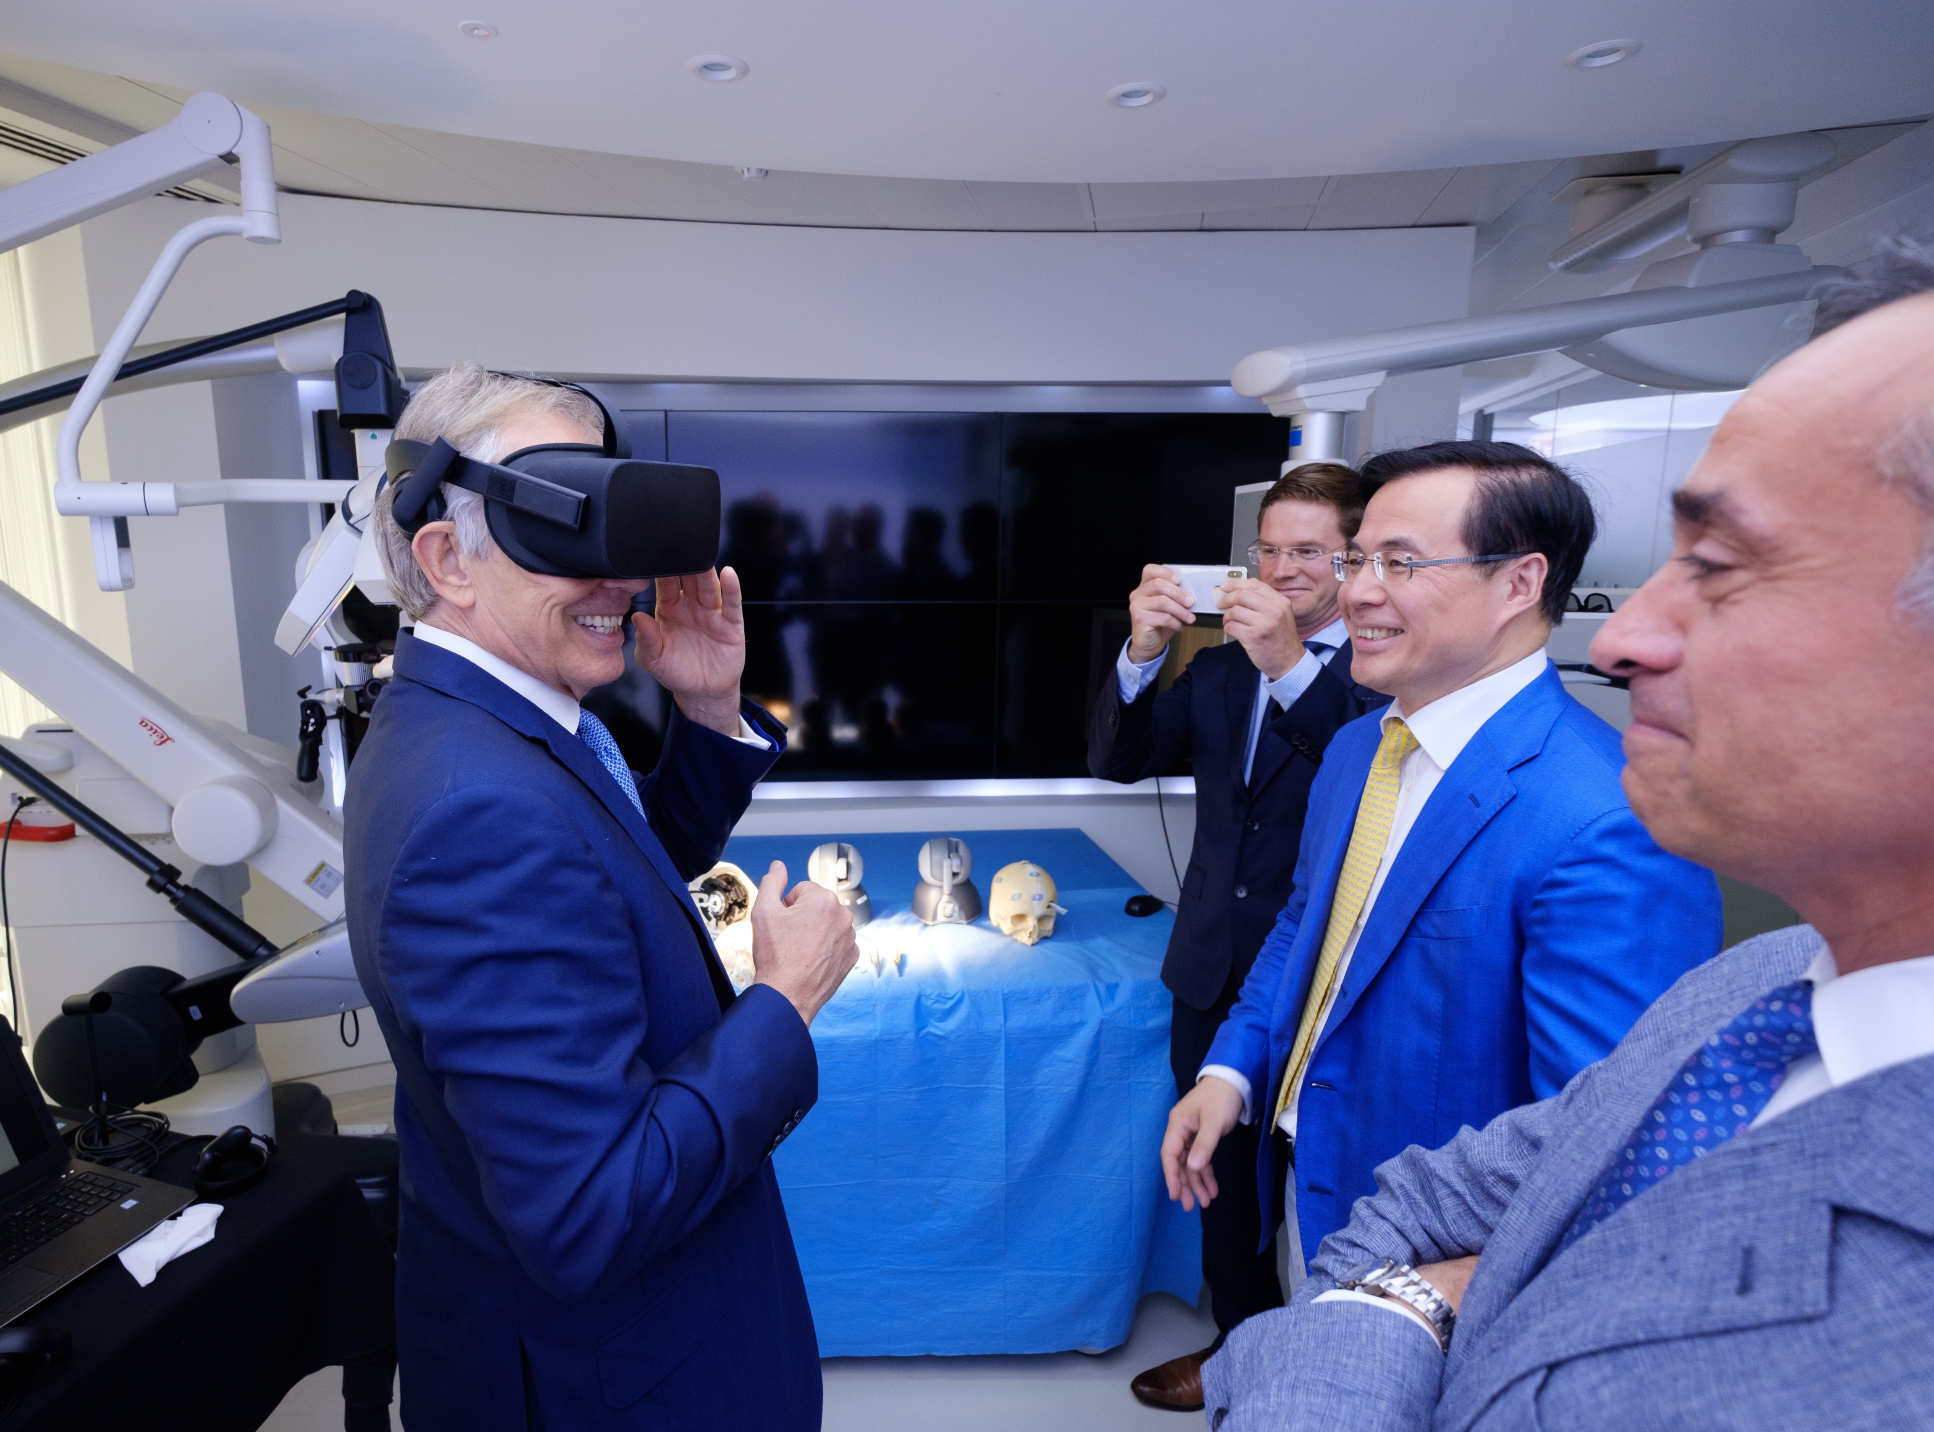 During his visit to Imperial Mr Blair toured the Hamlyn Centre for Robotics, viewing demonstrations of surgical robots, 3D printed microrobotic tools and augmented reality technology for medical imaging